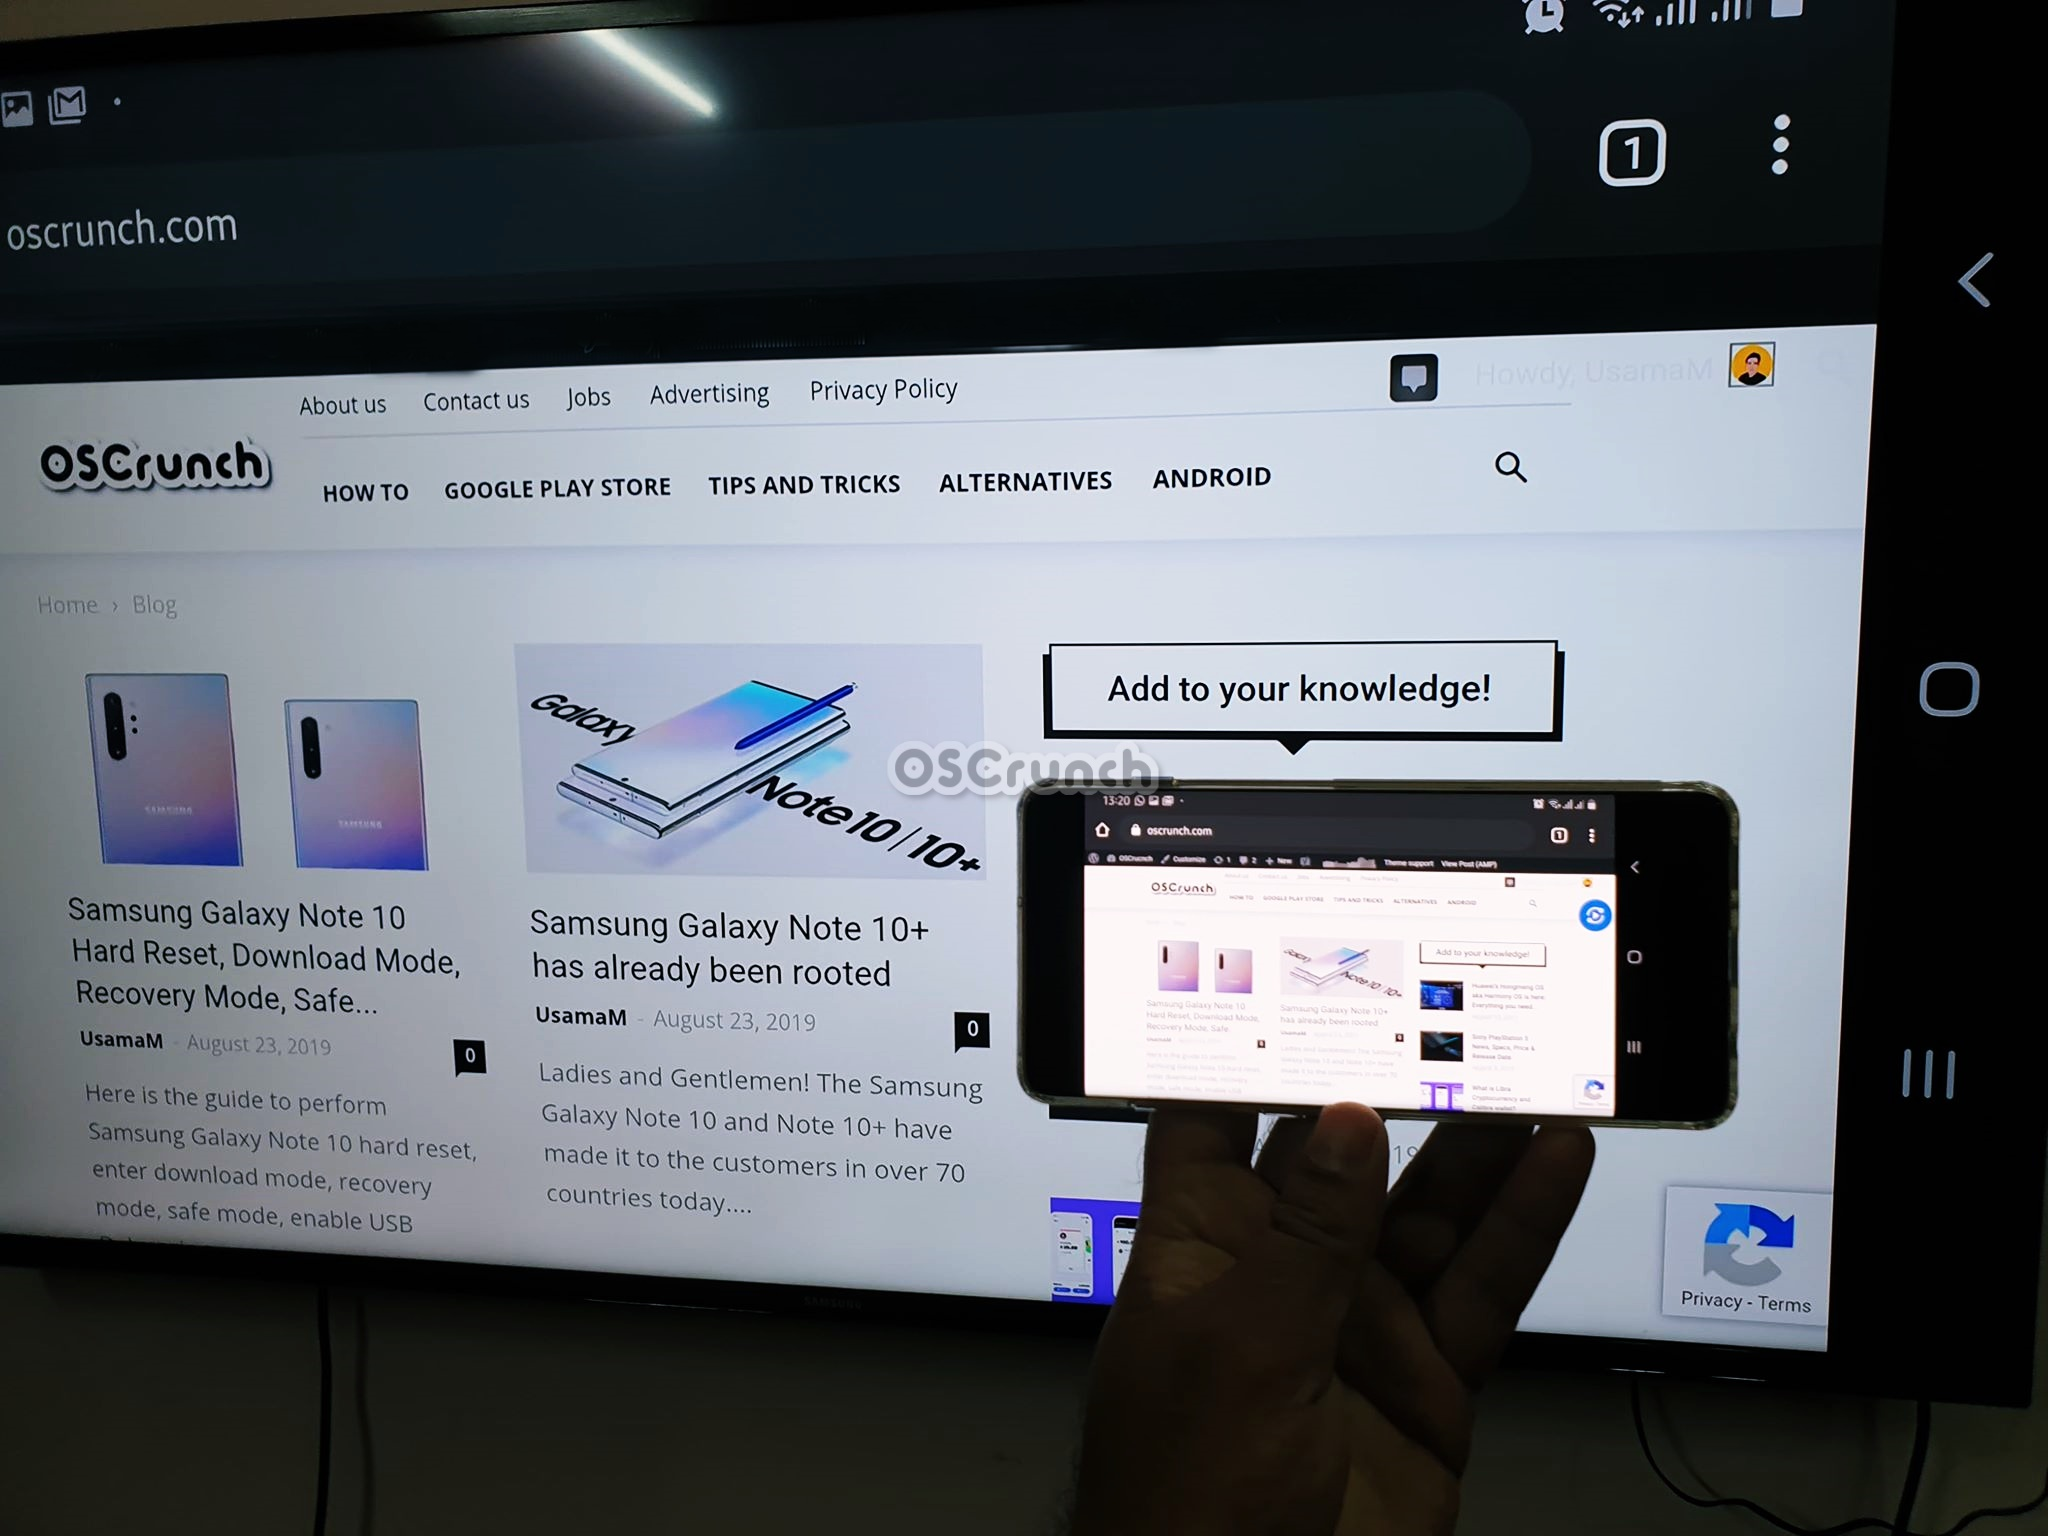 turn on screen mirroring on Galaxy Note 10 and connect it to Smart TV